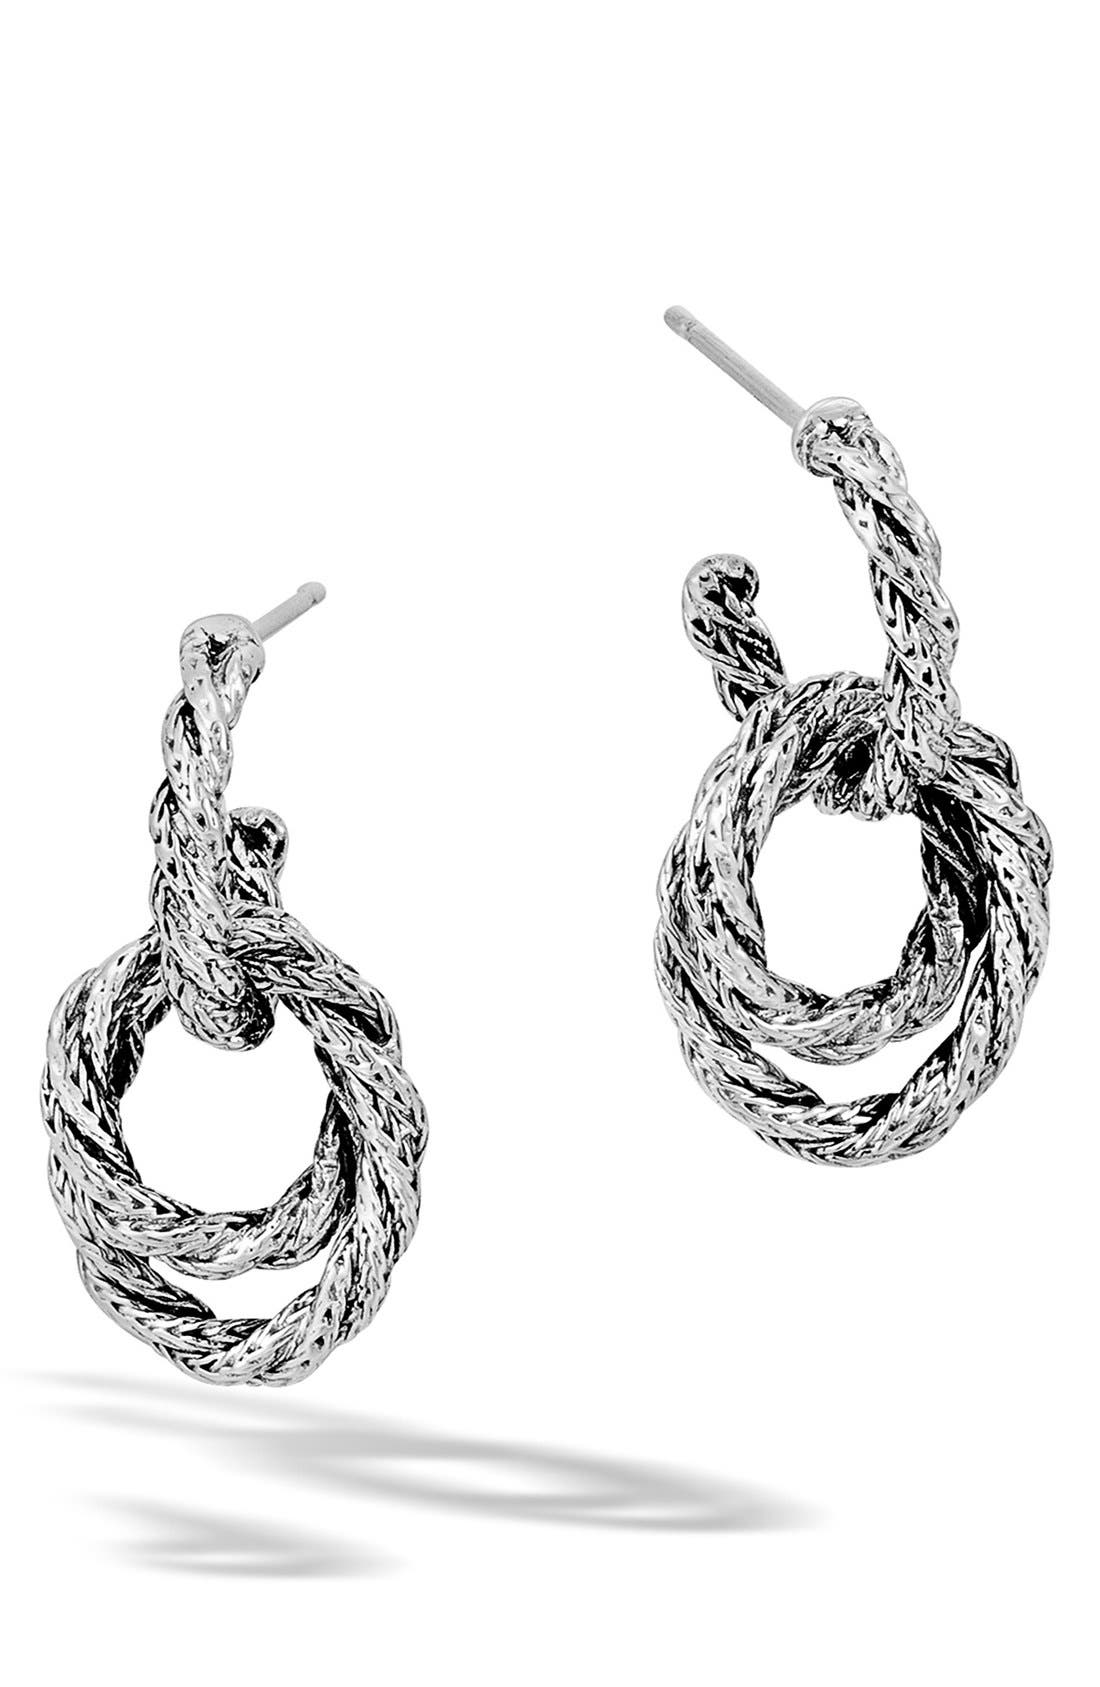 'Classic Chain' Double Twisted Hoop Earrings,                             Main thumbnail 1, color,